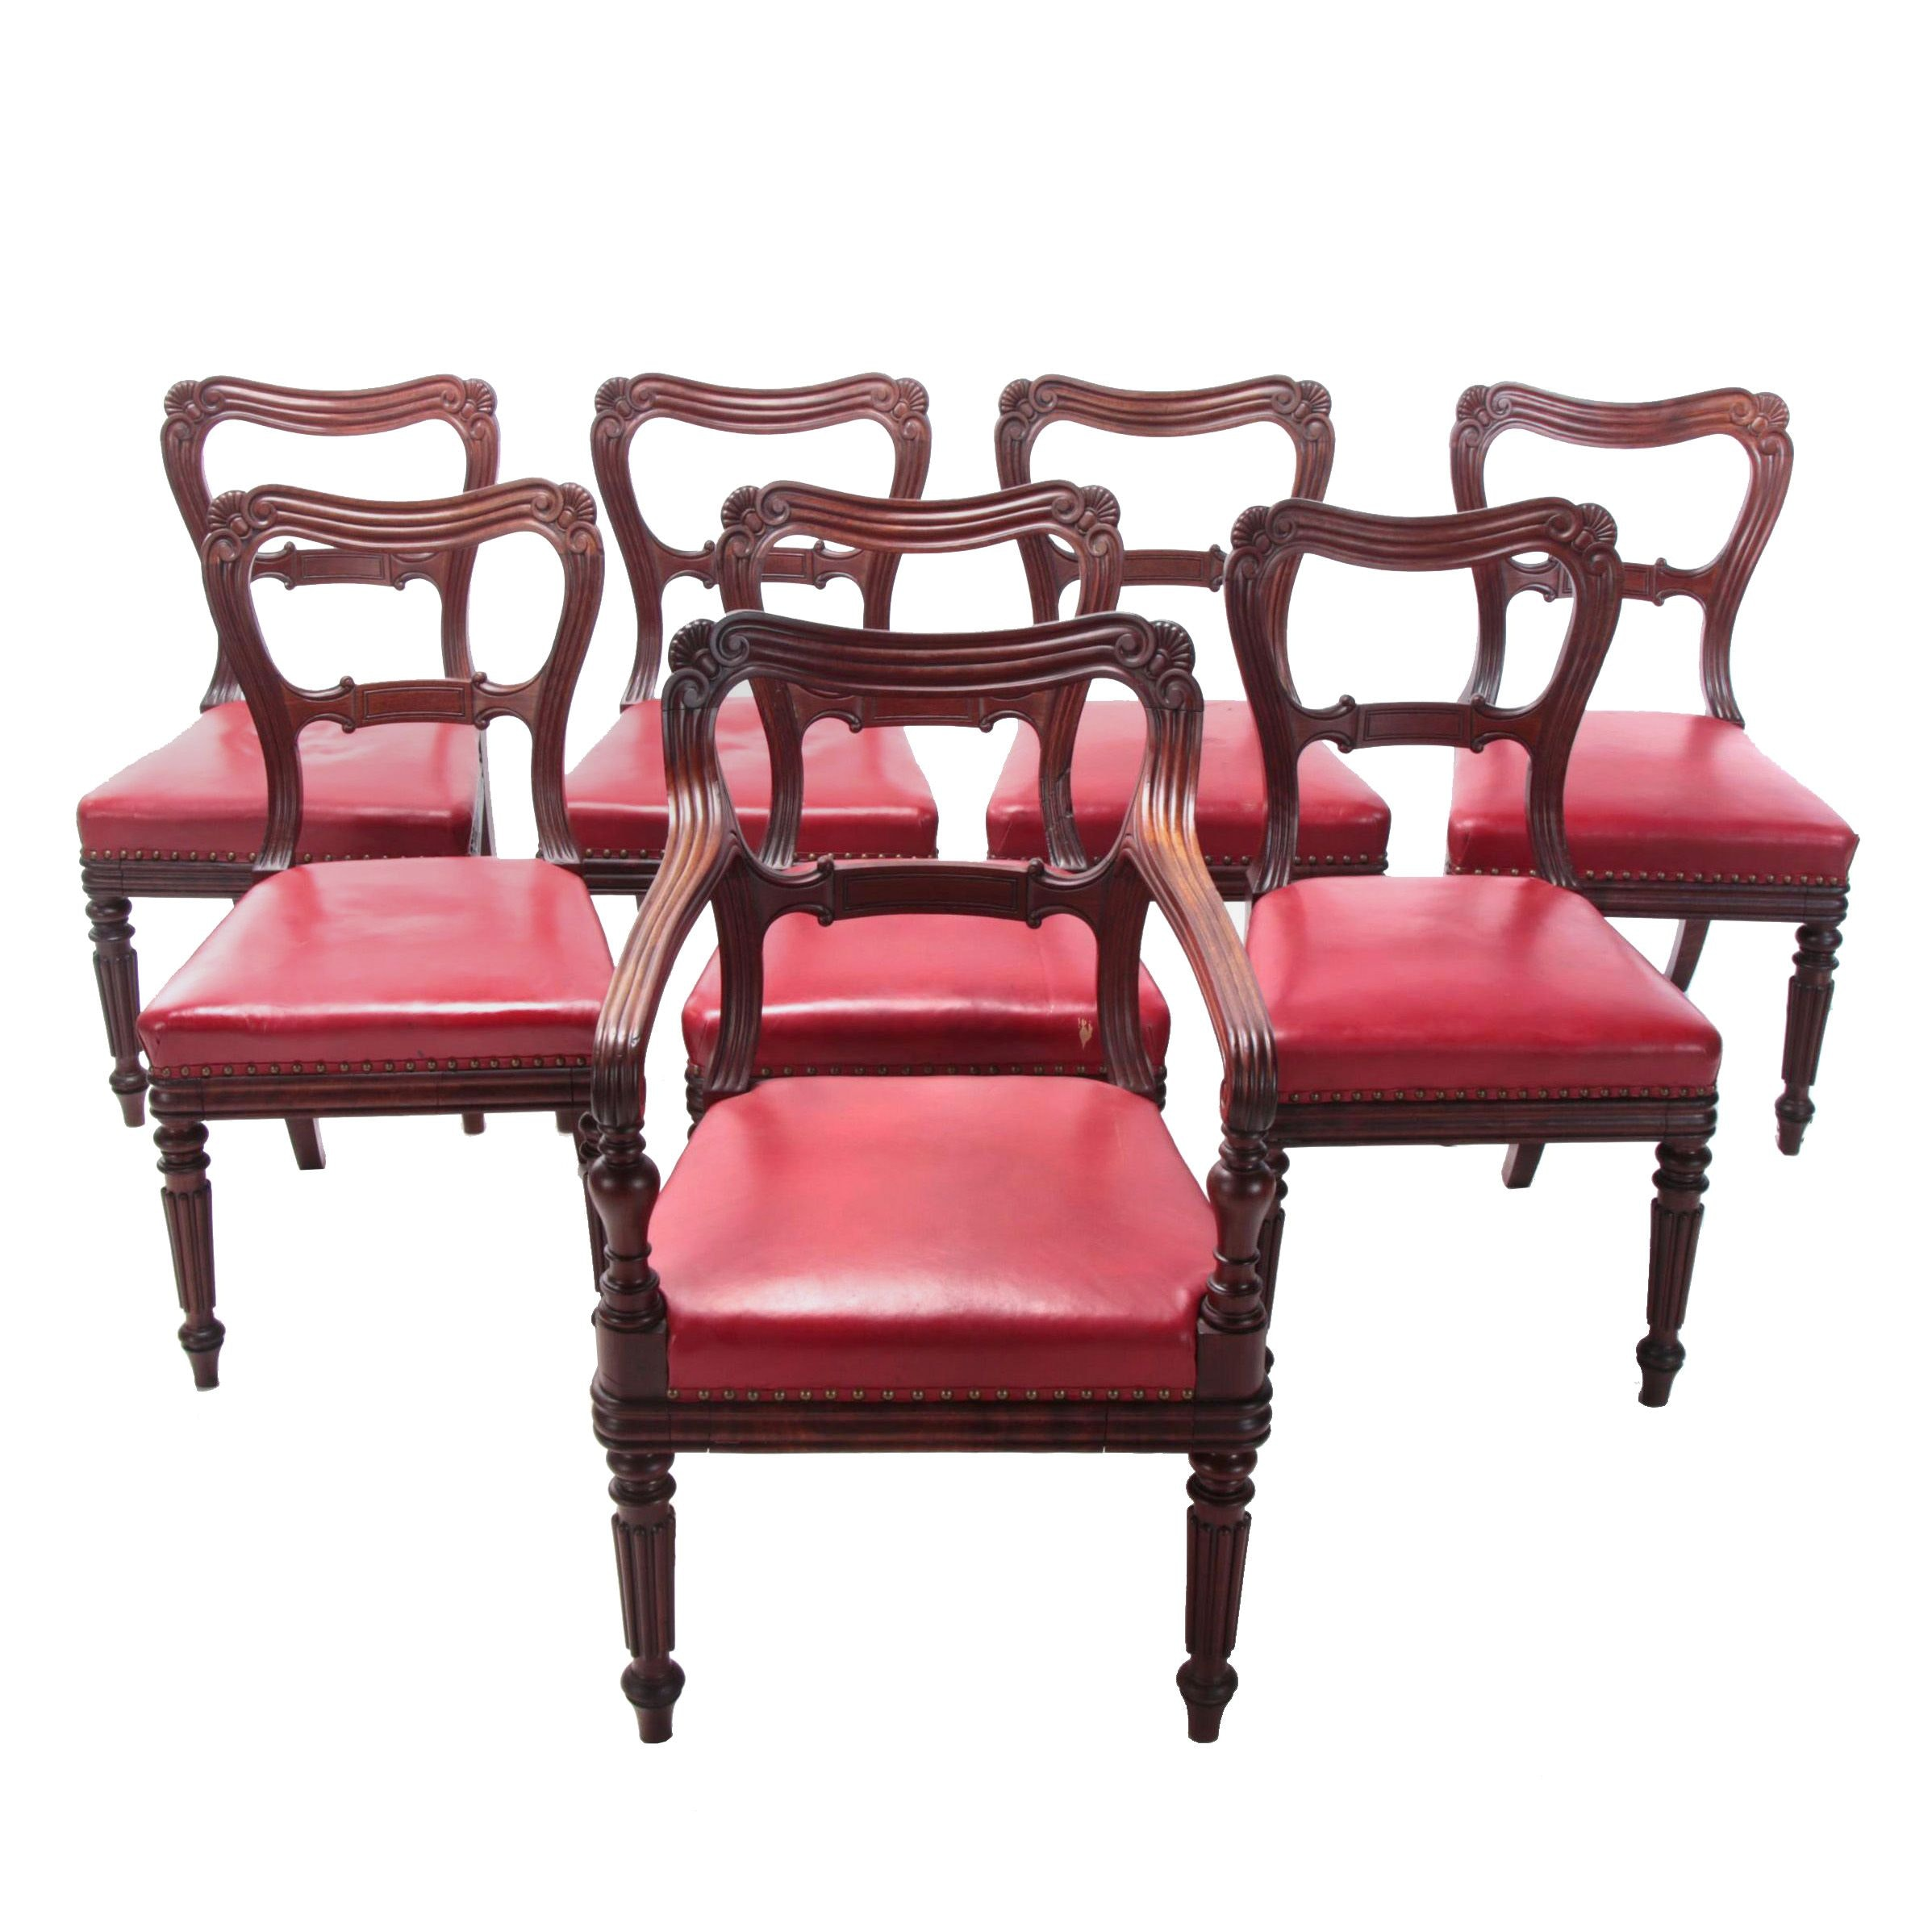 Eight Gillows of Lancaster, George IV Mahogany Dining Chairs, Circa 1820-1830